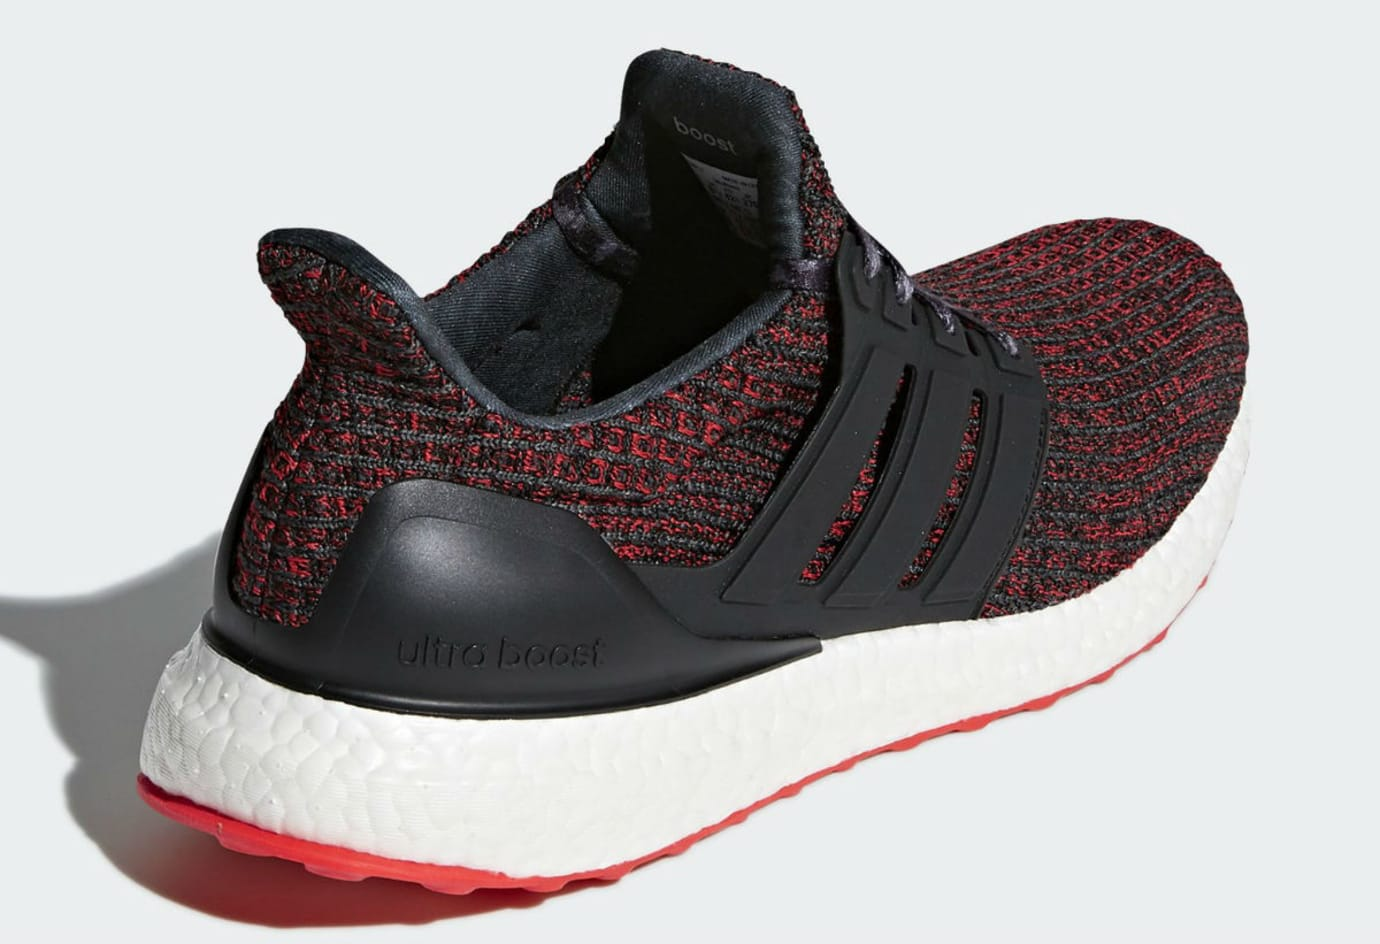 551fe17fa0b Adidas Ultra Boost 4.0 Chinese New Year Release Date BB6173 Heel